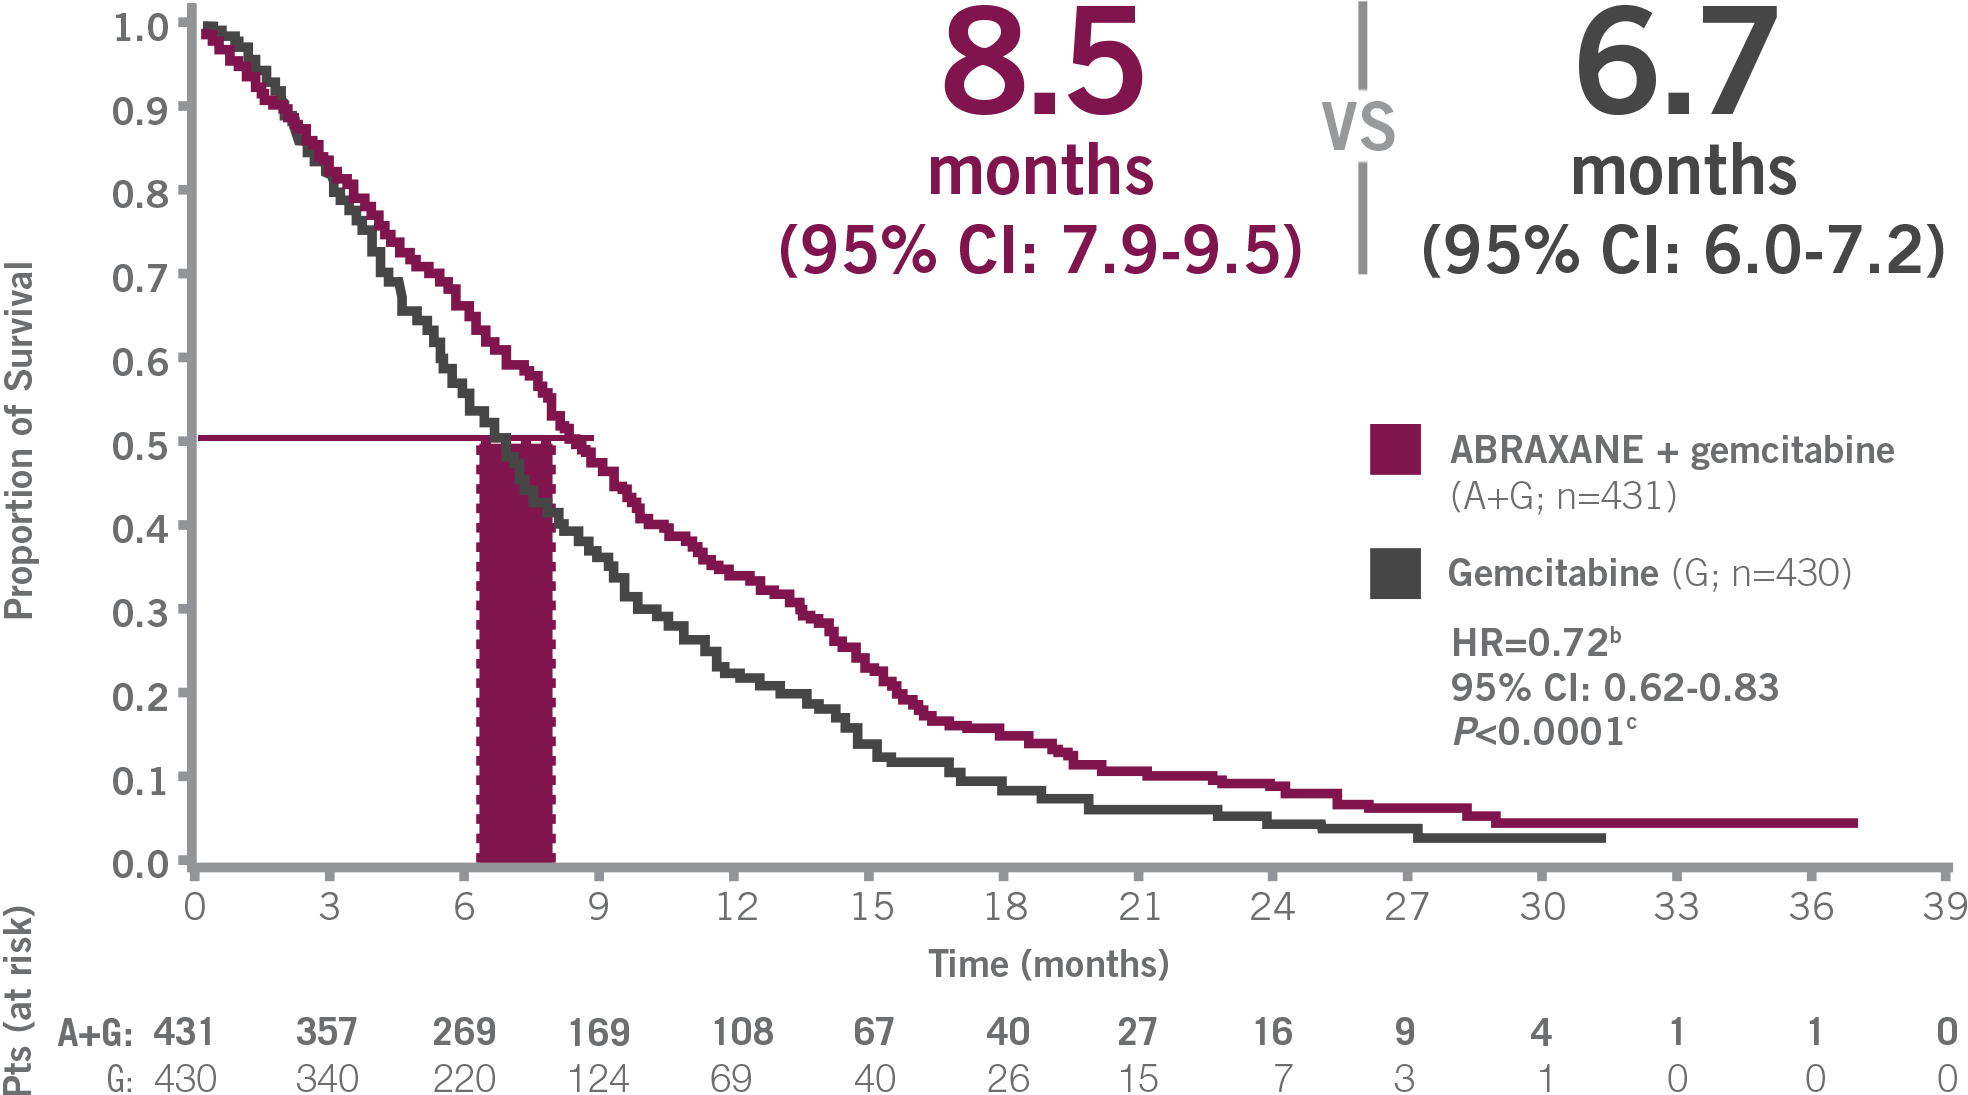 Overall survival in MPACT trial ABRAXANE + gemcitabine (8.5 months, 95% CI: 7.9-9.5) vs gemcitabine alone (6.7 months, 95% CI: 6.0-7.2); P <0.0001 - Kaplan-Meier graph